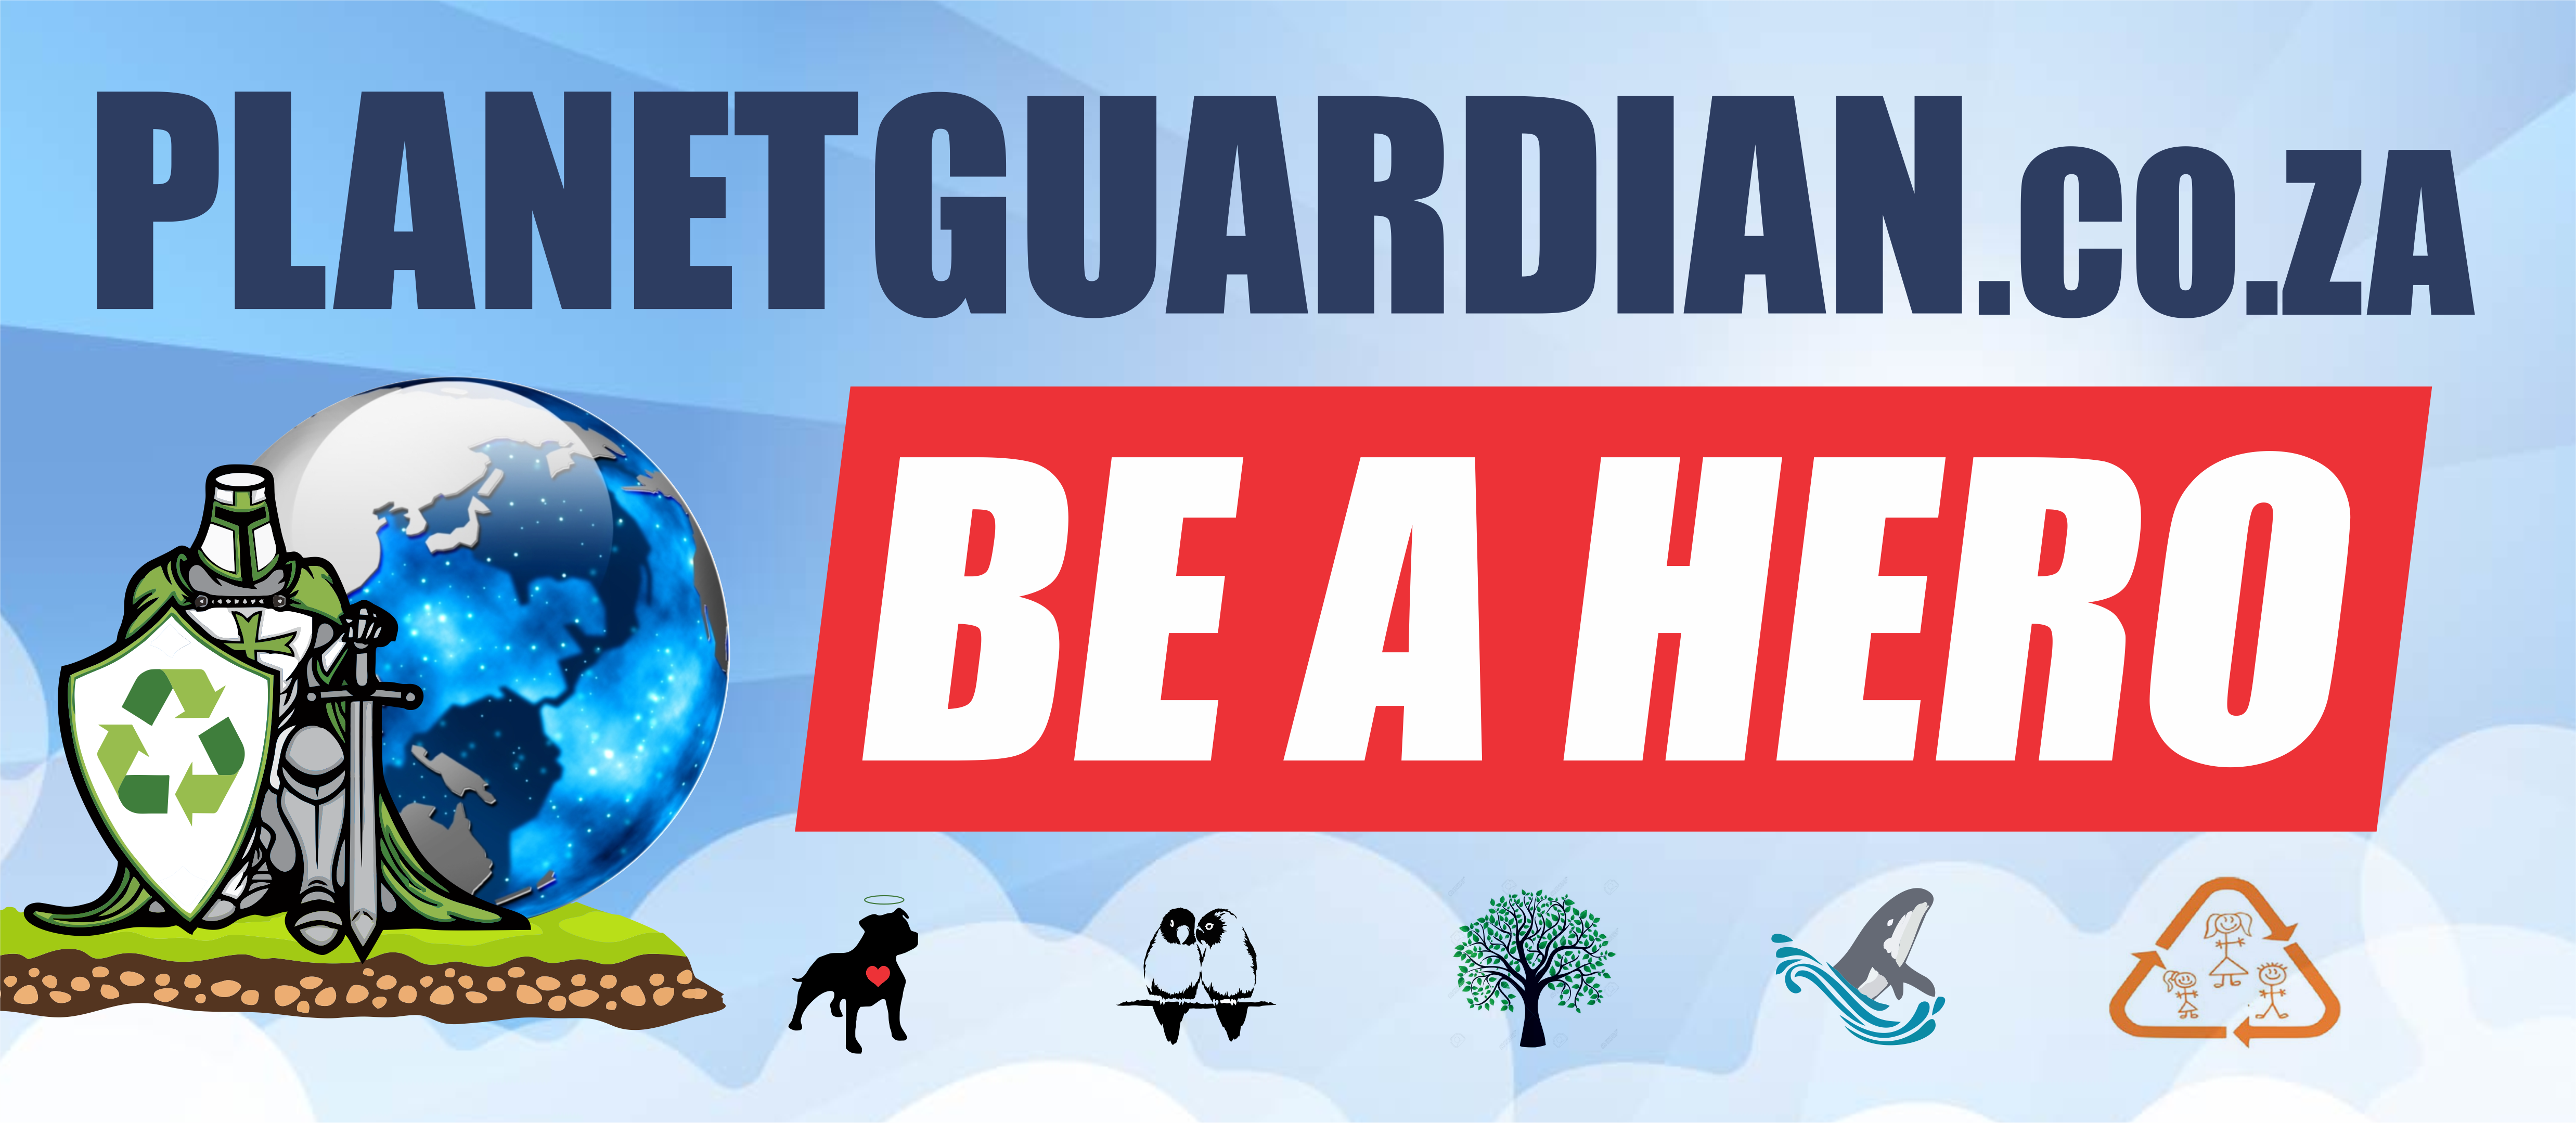 """Planet Guardian - Planet Guardian, Be a Hero residential and small commercial recycling collections in Cape Town to create jobs for commercially unemployable people to as to fight crime; stimulate the local economy and manually create Carbon Credits and Municipal Budgeted landfill airspace, to sell so as to fund animal welfare, relevant education and sports programs. Membership starts at R100/month for the free collection of 1 bag of clean, mixed recycling, community donations and electrical discards per week. (Constitutionally protected """"Dry property waste"""" which allows us to manifest our Rights to Human Dignity, safety from government induced violence; to a clean, livable and safe community, suitable for the raising of our children.,"""